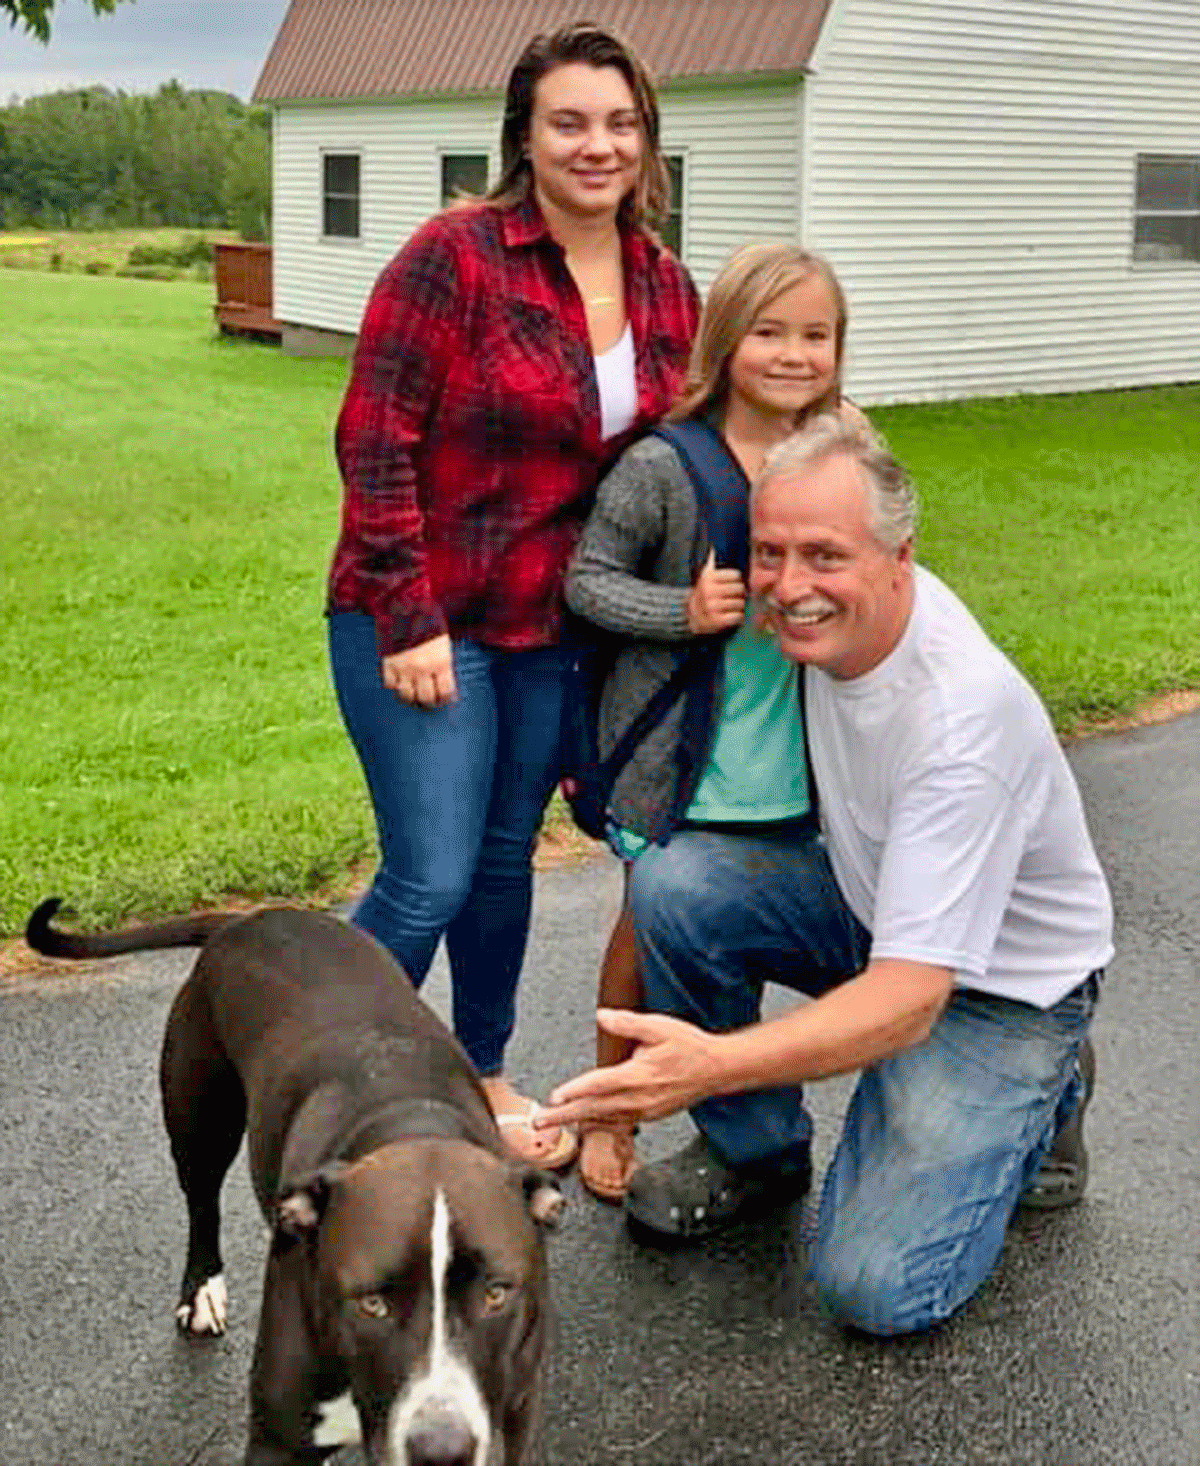 Hannah Babcock with her daughter Aubree Phillips and Aubree's Papa, John Clemmo along with the family dog, Remi seeing Aubree off to her first day of second grade at Norwood-Norfolk Central School. Photo taken by Terri Sharlow Clemmo of Norfolk.